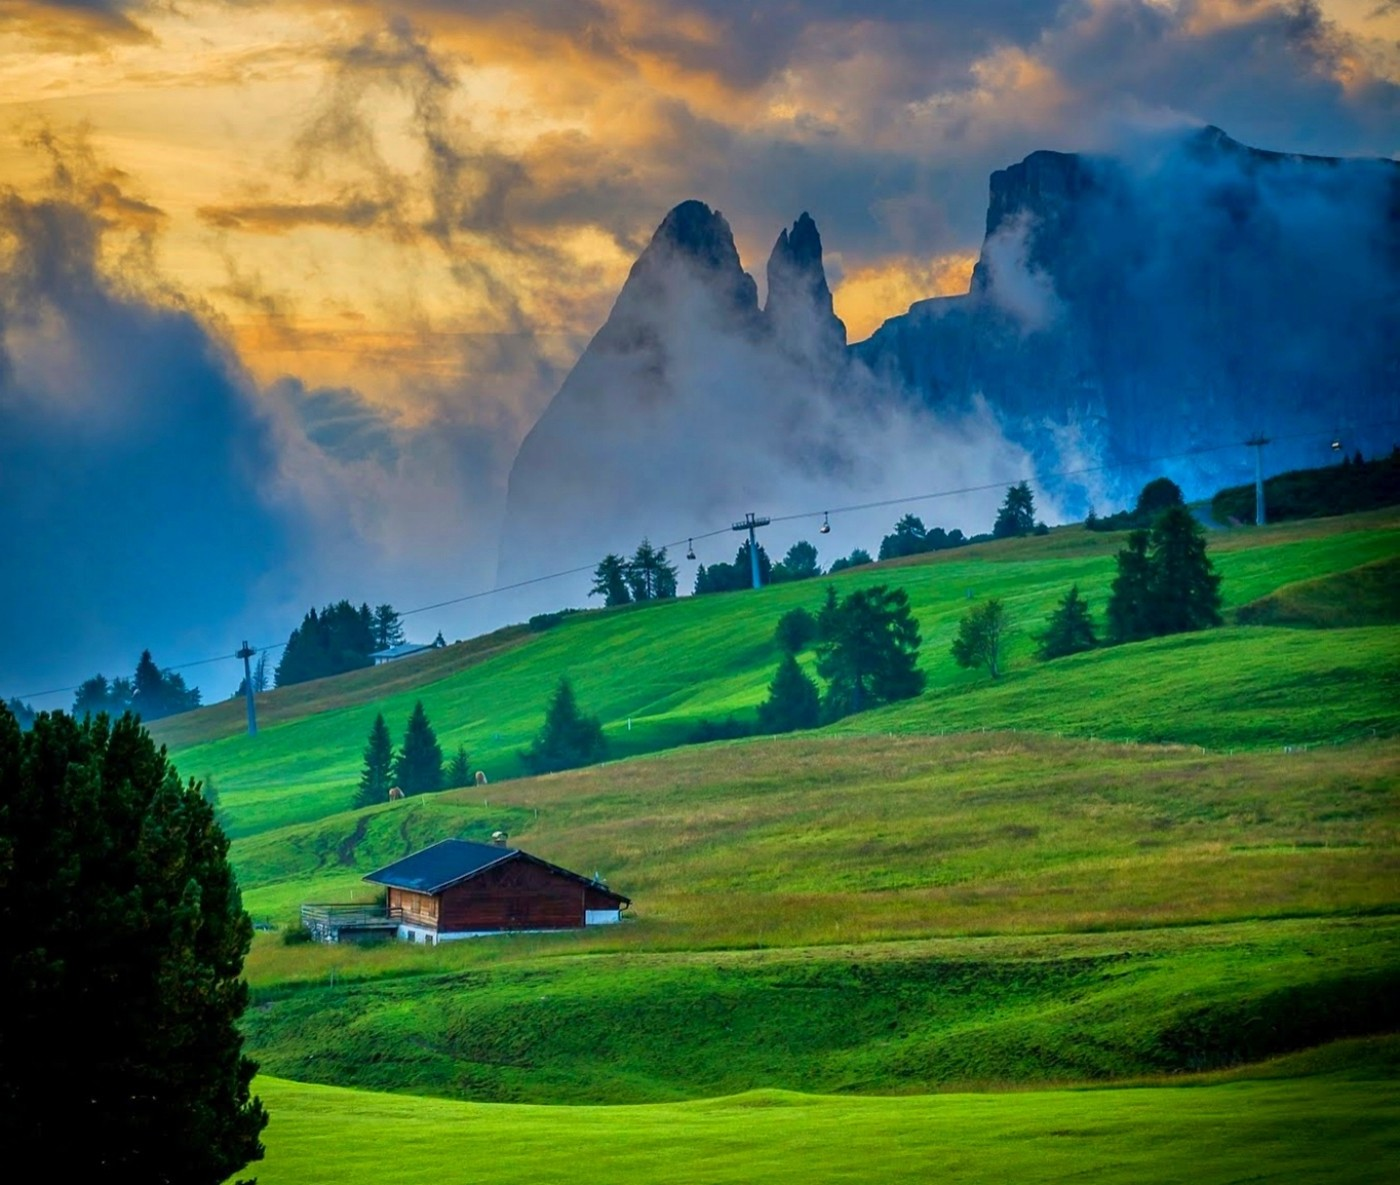 5760x1080 Anime Wallpaper Nature Landscape Dolomites Mountains Sunset Italy